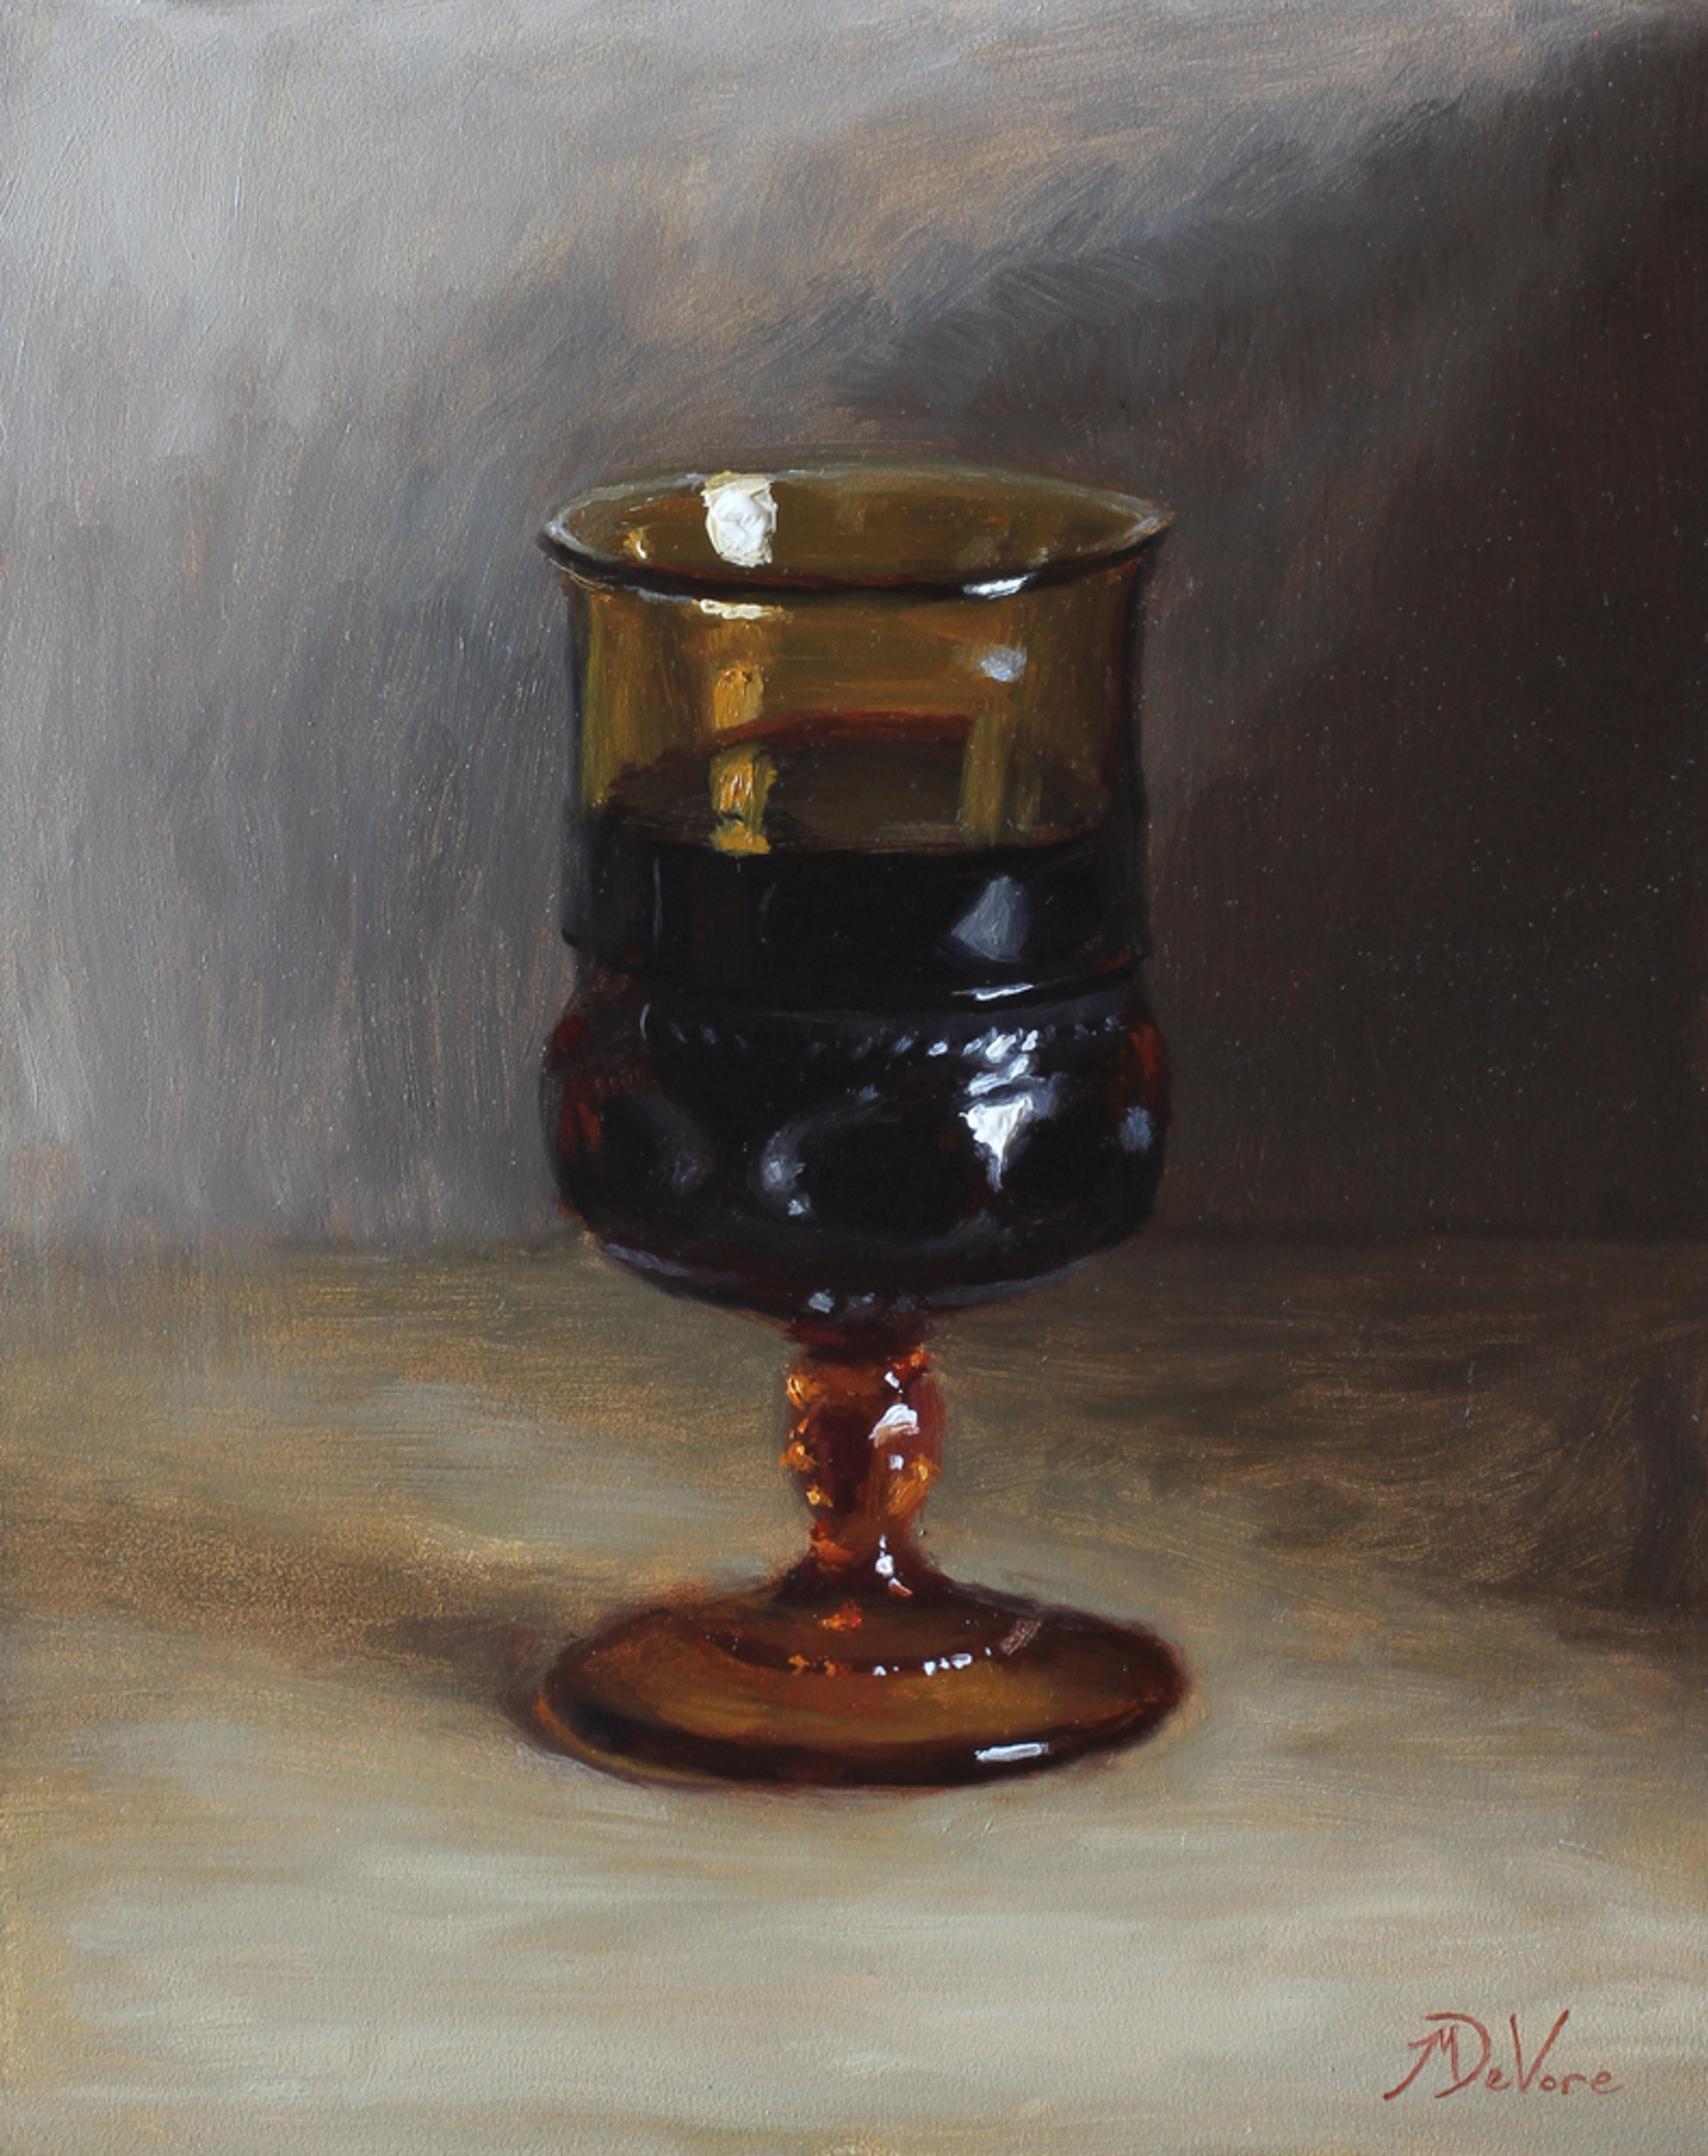 Goblet of Wine by Michael DeVore